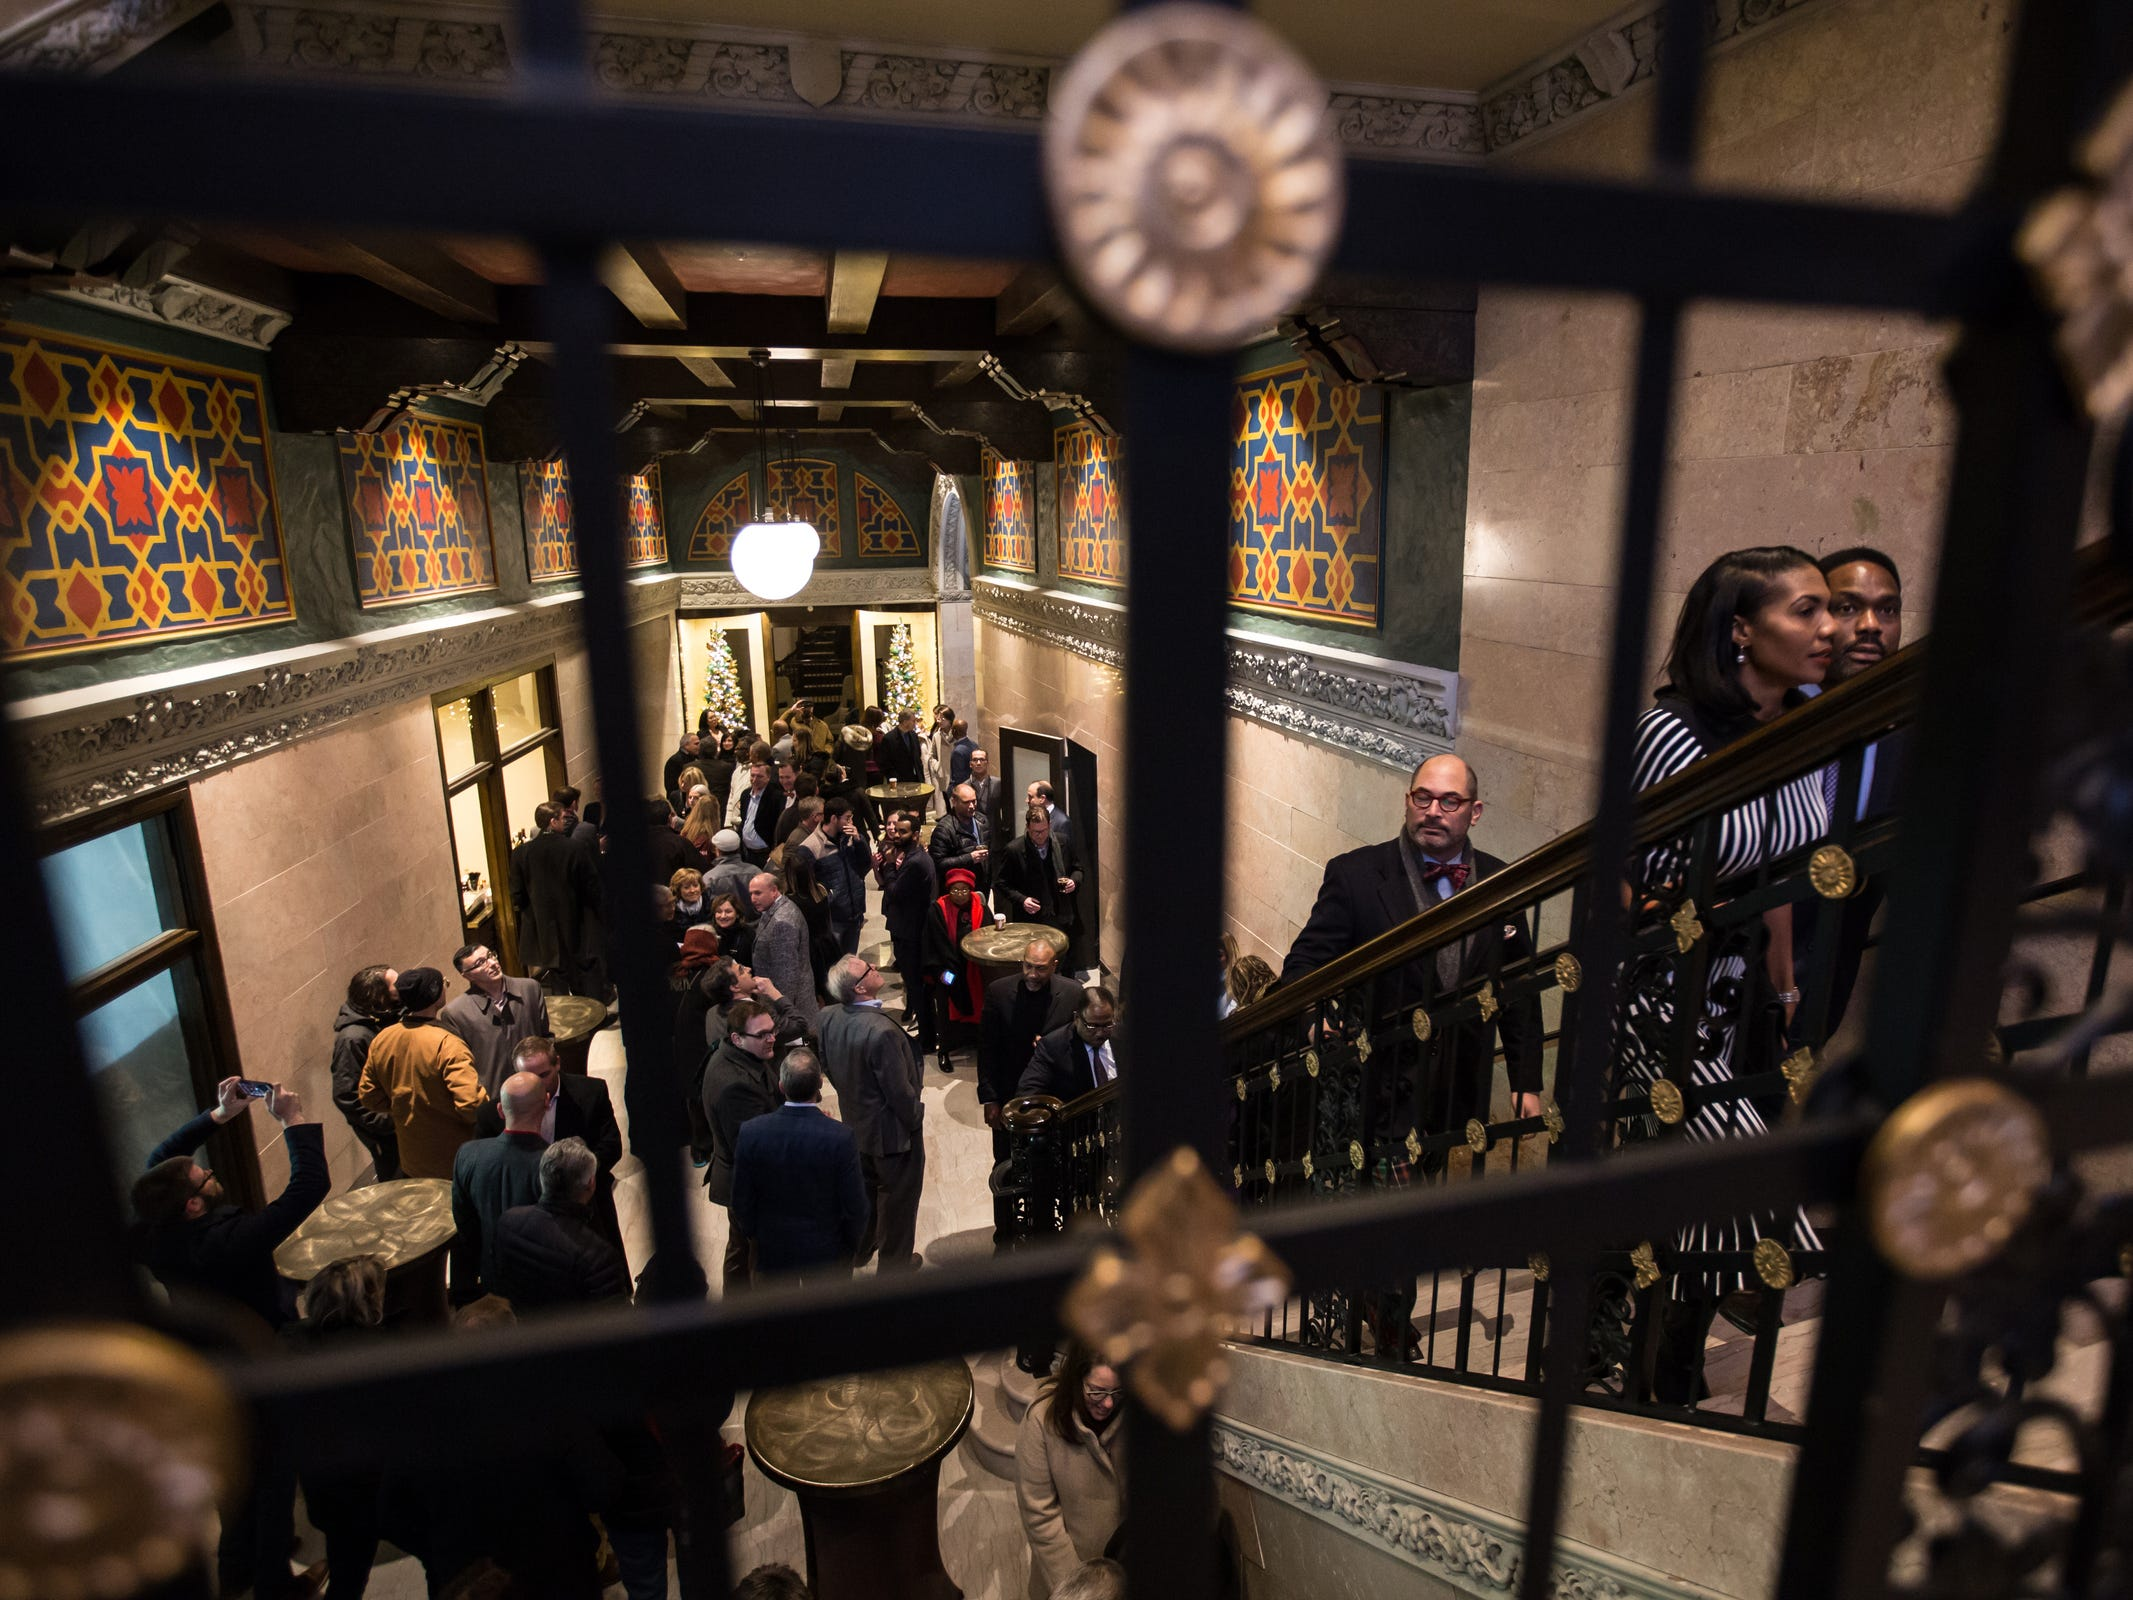 People gather to see the fully restored Great Hall of the historic Metropolitan Building in downtown Detroit on Monday, December 17, 2018. The renovation of skyscraper will include retail, restaurants and Michigan's first Element Hotel.